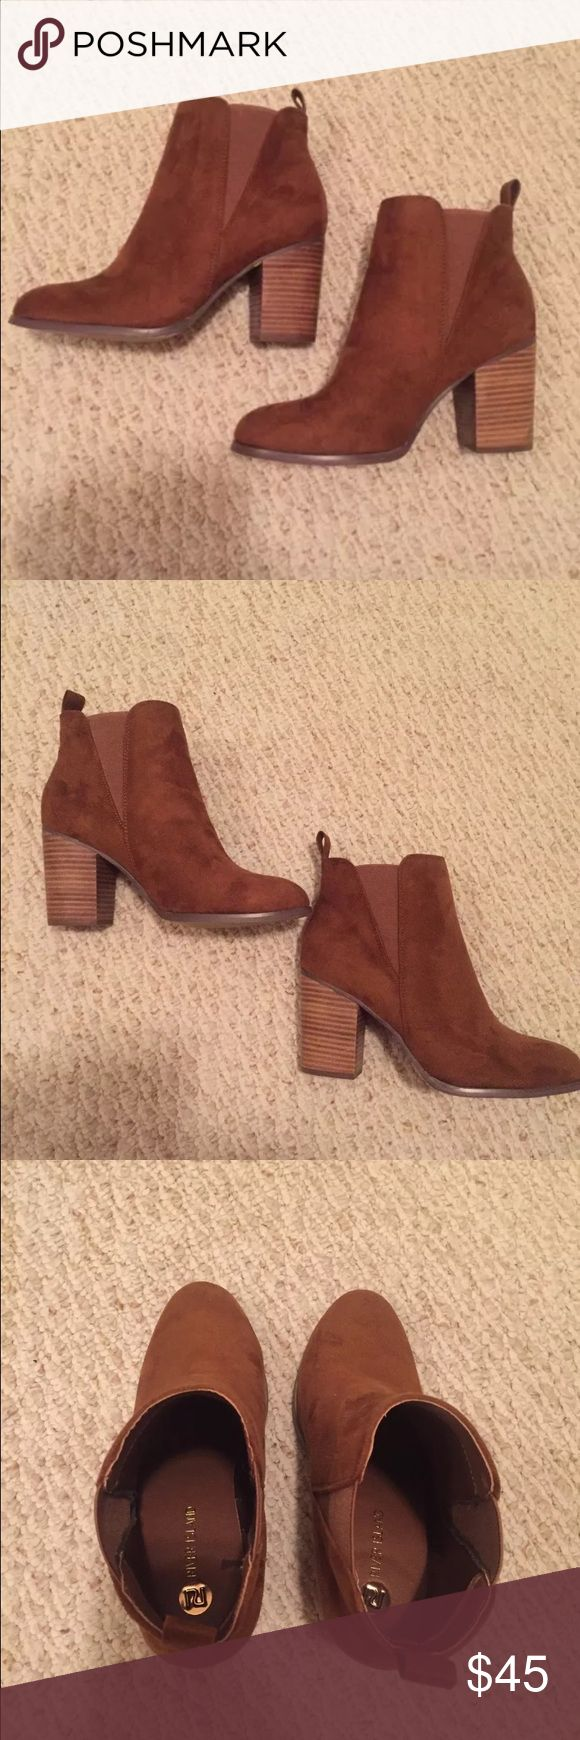 River Island suede ankle booties 9 Nearly new River Island suede ankle booties size 9. Worn one time. Tan River Island Shoes Ankle Boots & Booties